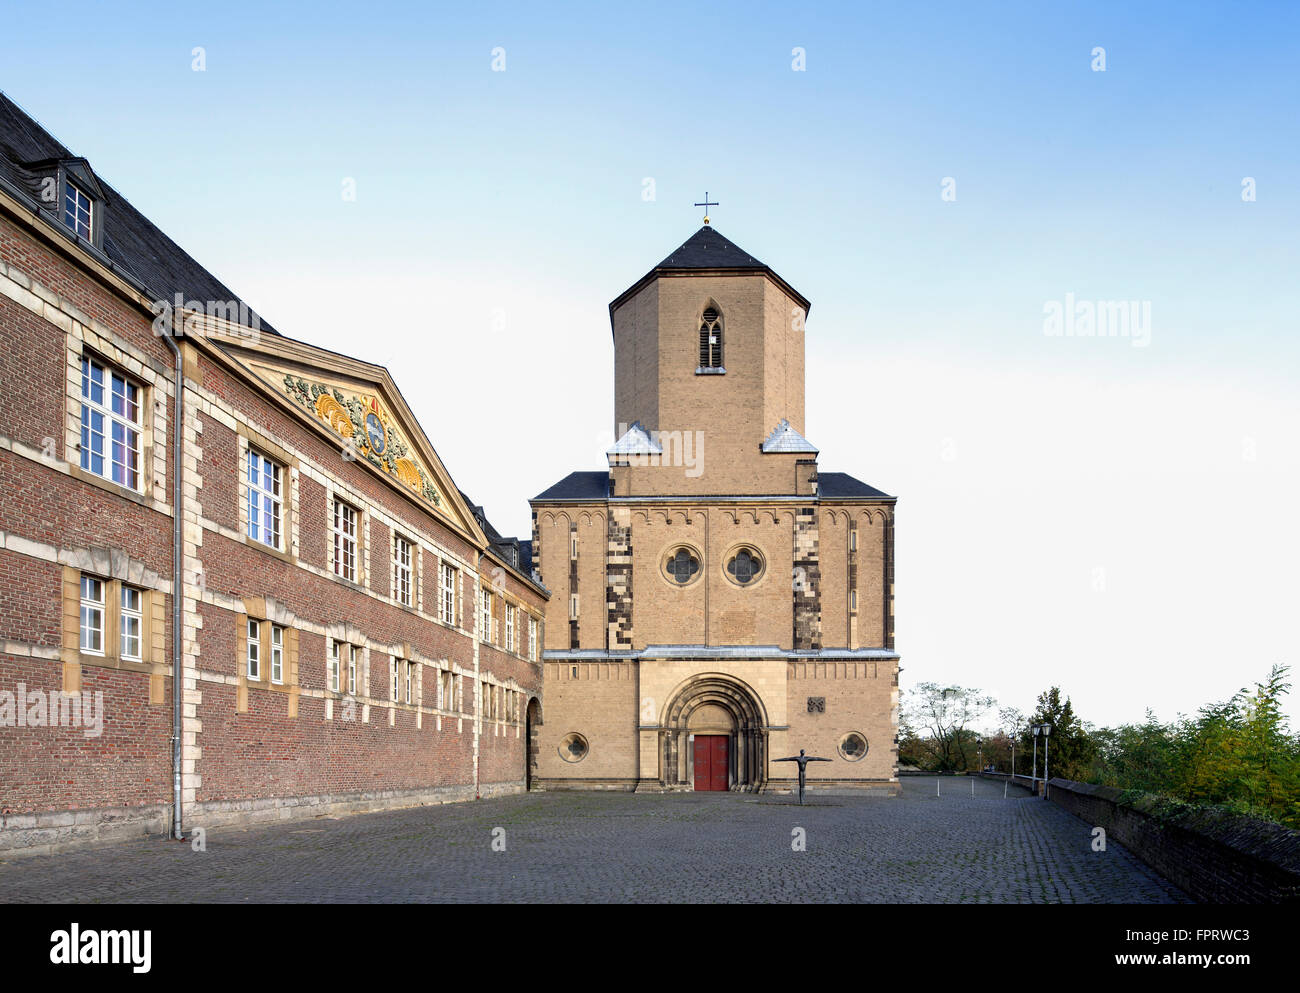 Mönchengladbach Minster, left city hall, Abteiberg, Mönchengladbach, North Rhine-Westphalia, Germany - Stock Image